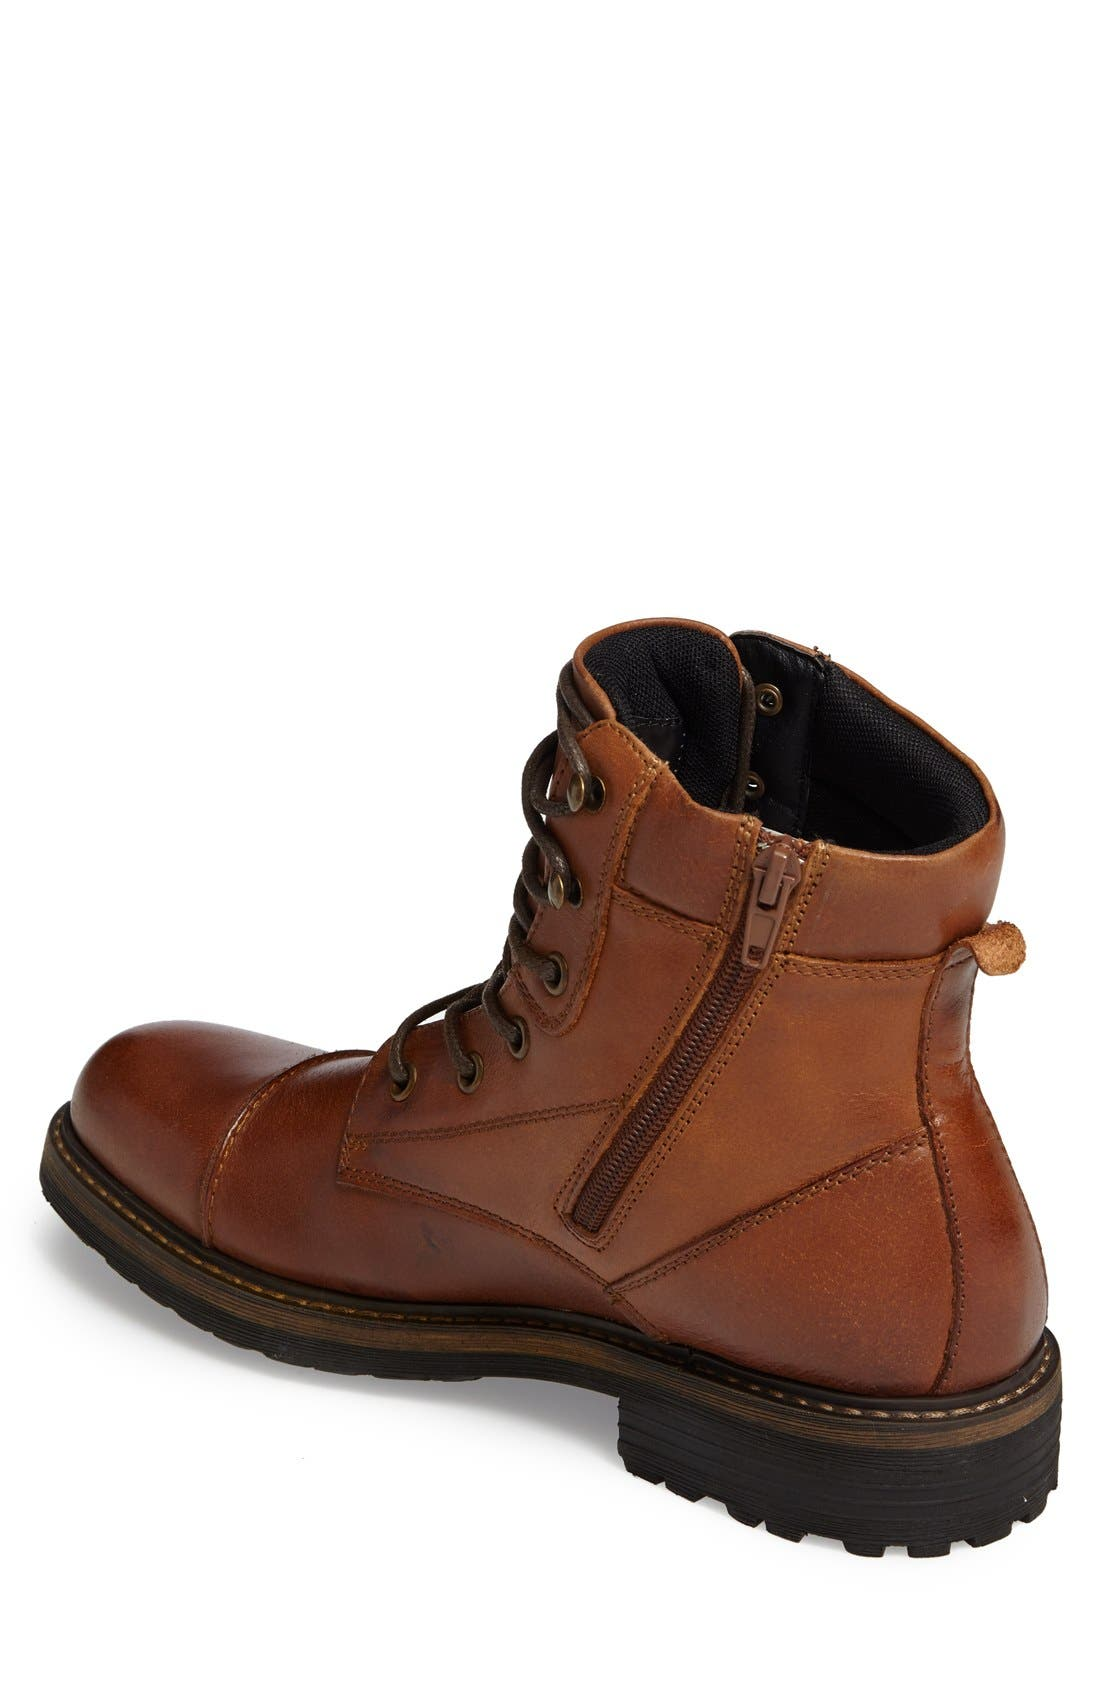 Derek Cap Toe Boot,                             Alternate thumbnail 12, color,